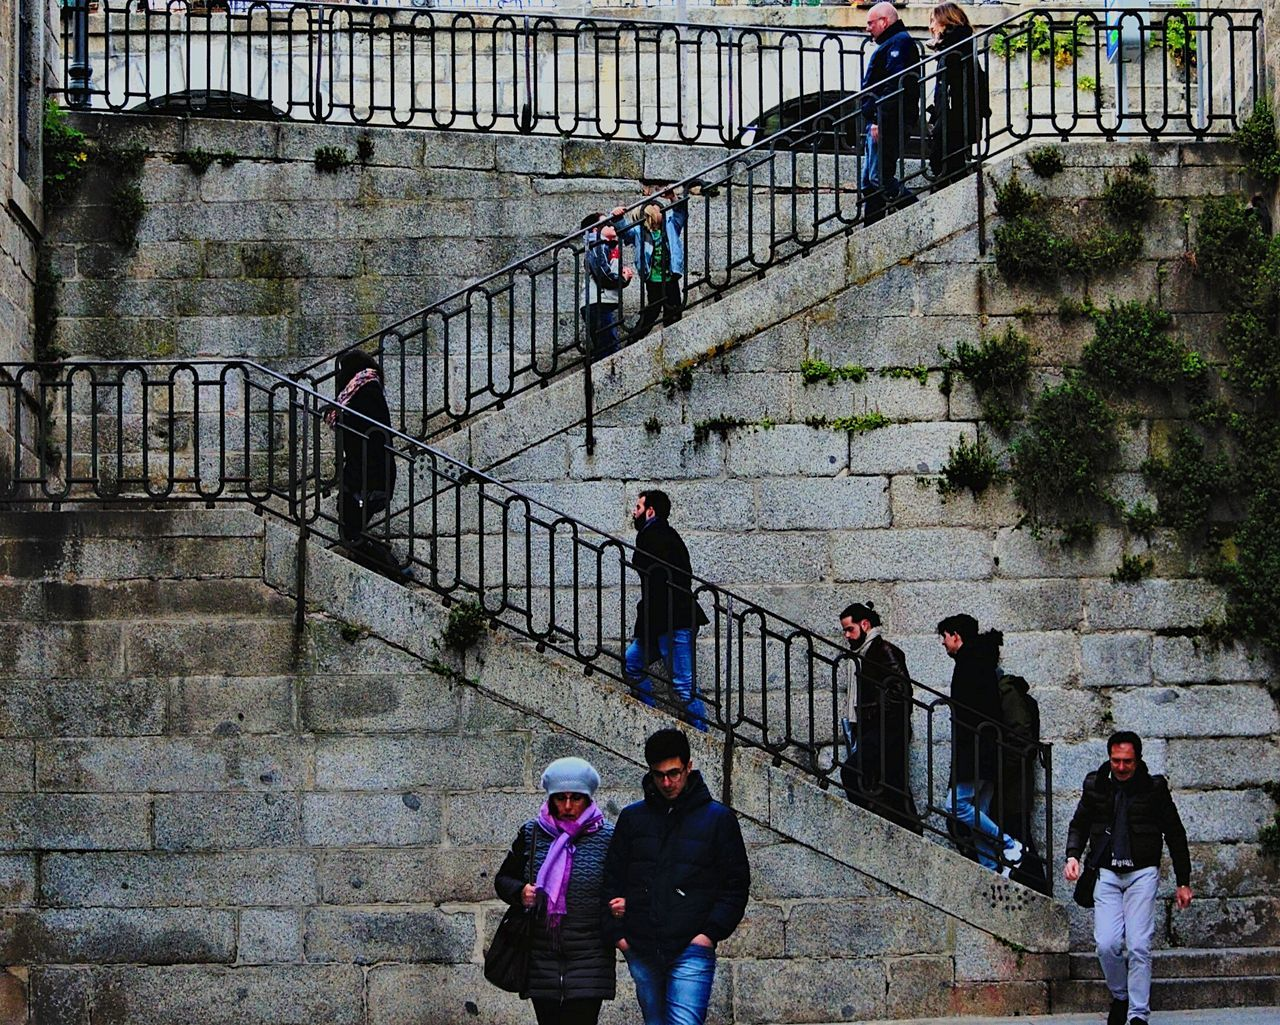 railing, large group of people, steps and staircases, built structure, real people, architecture, lifestyles, steps, men, leisure activity, women, prison, standing, day, outdoors, prisoner, city, people, adult, adults only